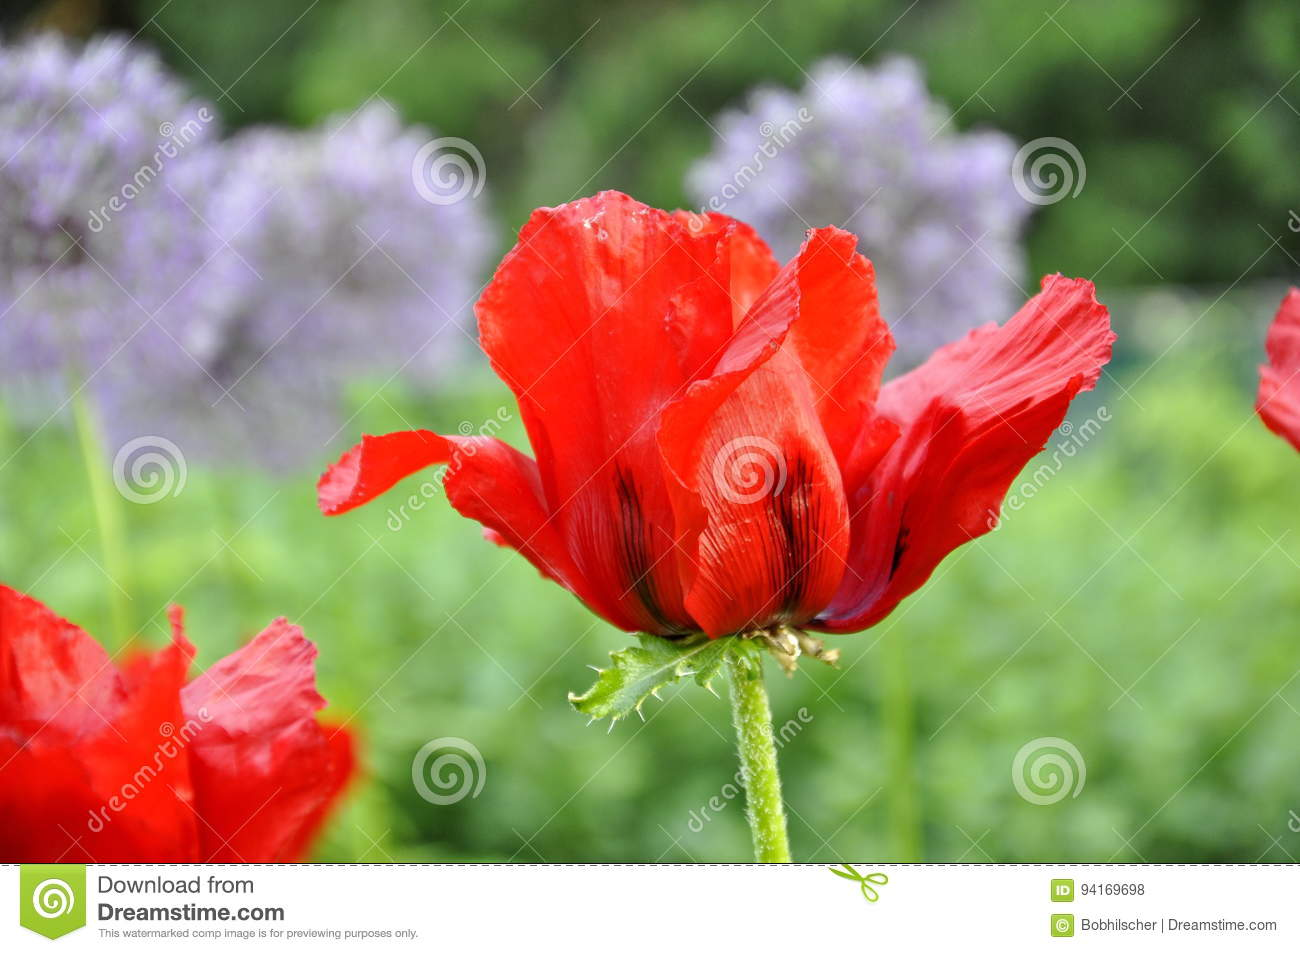 Red oriental poppy flowers stock photo image of canada 94169698 red oriental poppy flowers growing in a spring garden in ontario canada mightylinksfo